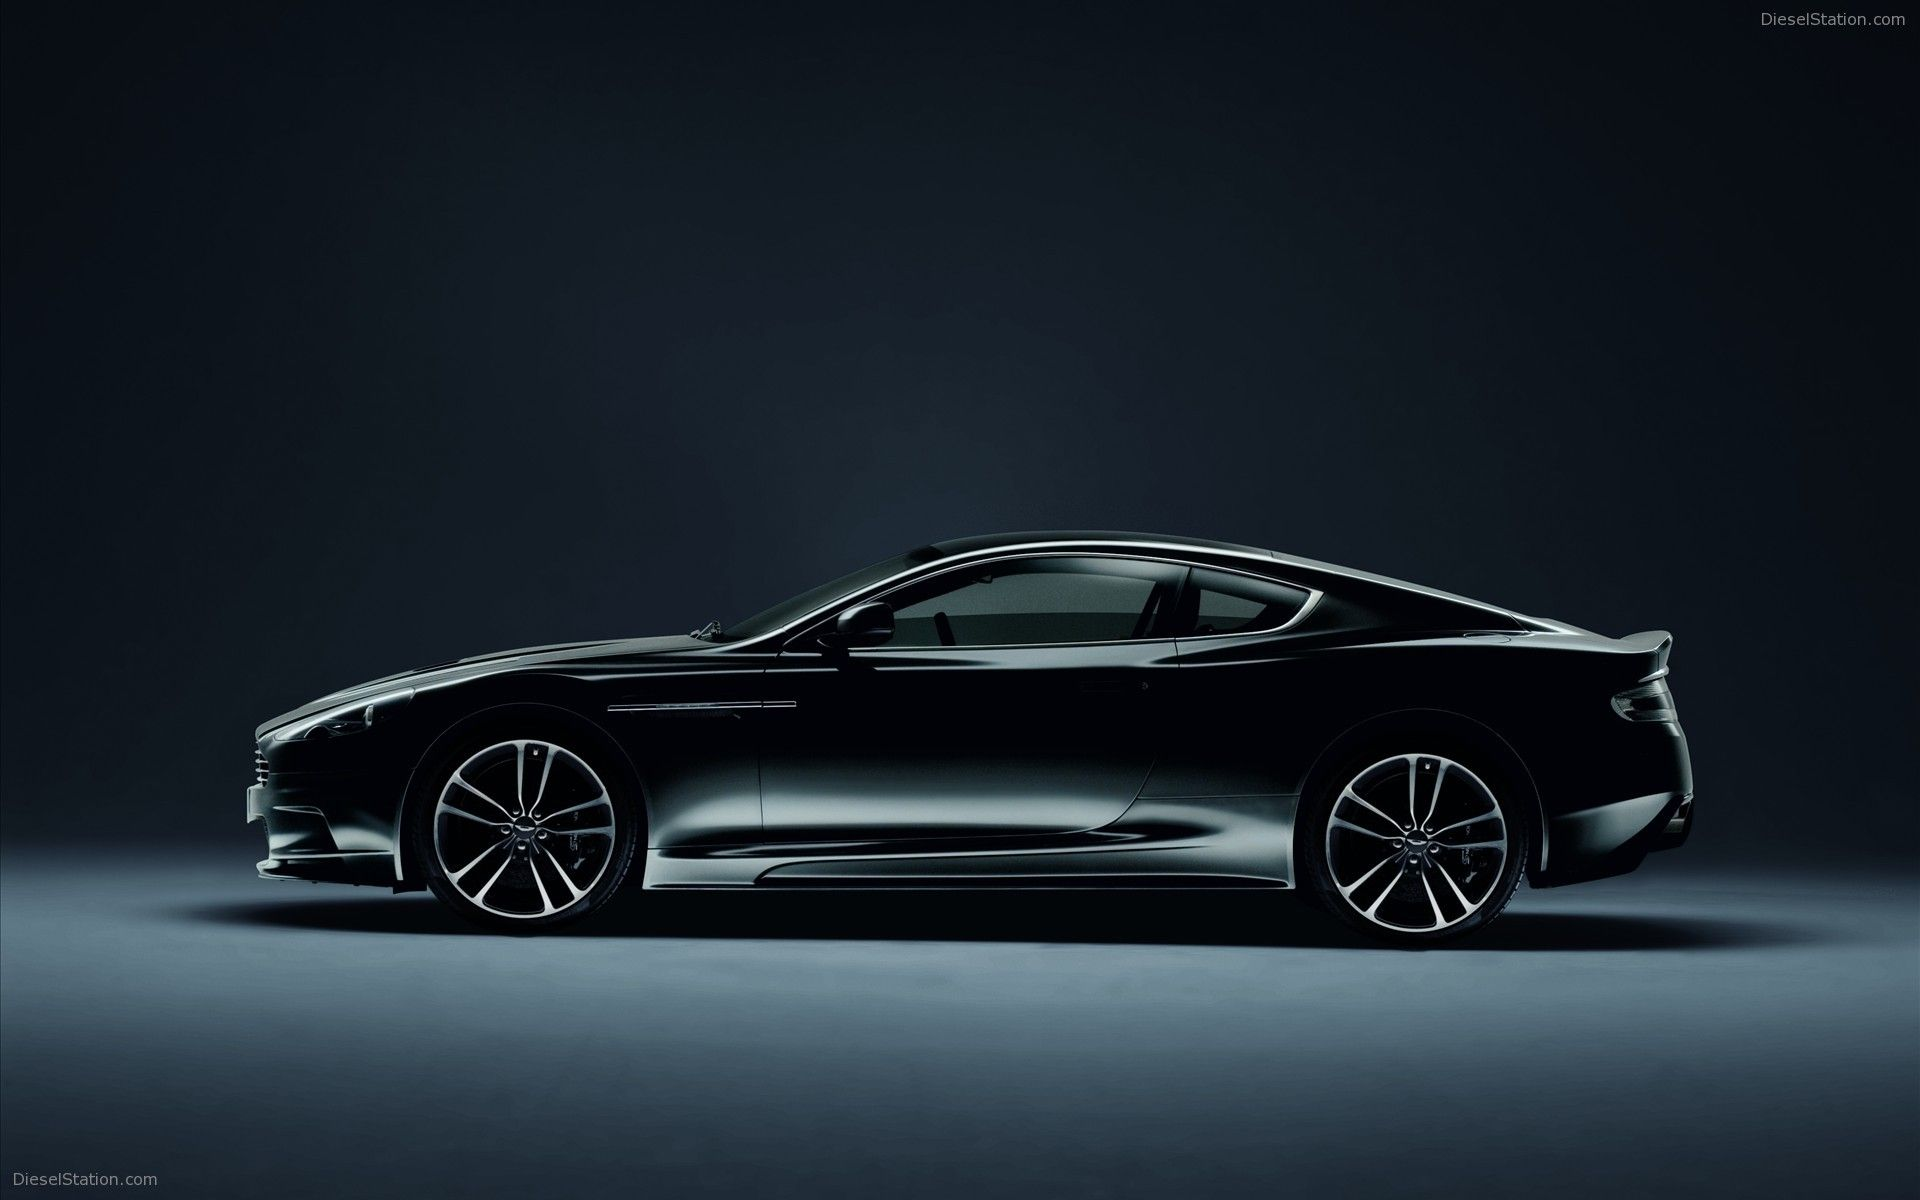 Aston Martin Carbon Black Special Editions Widescreen Exotic Car Pictures #06 of 12 : Diesel Station